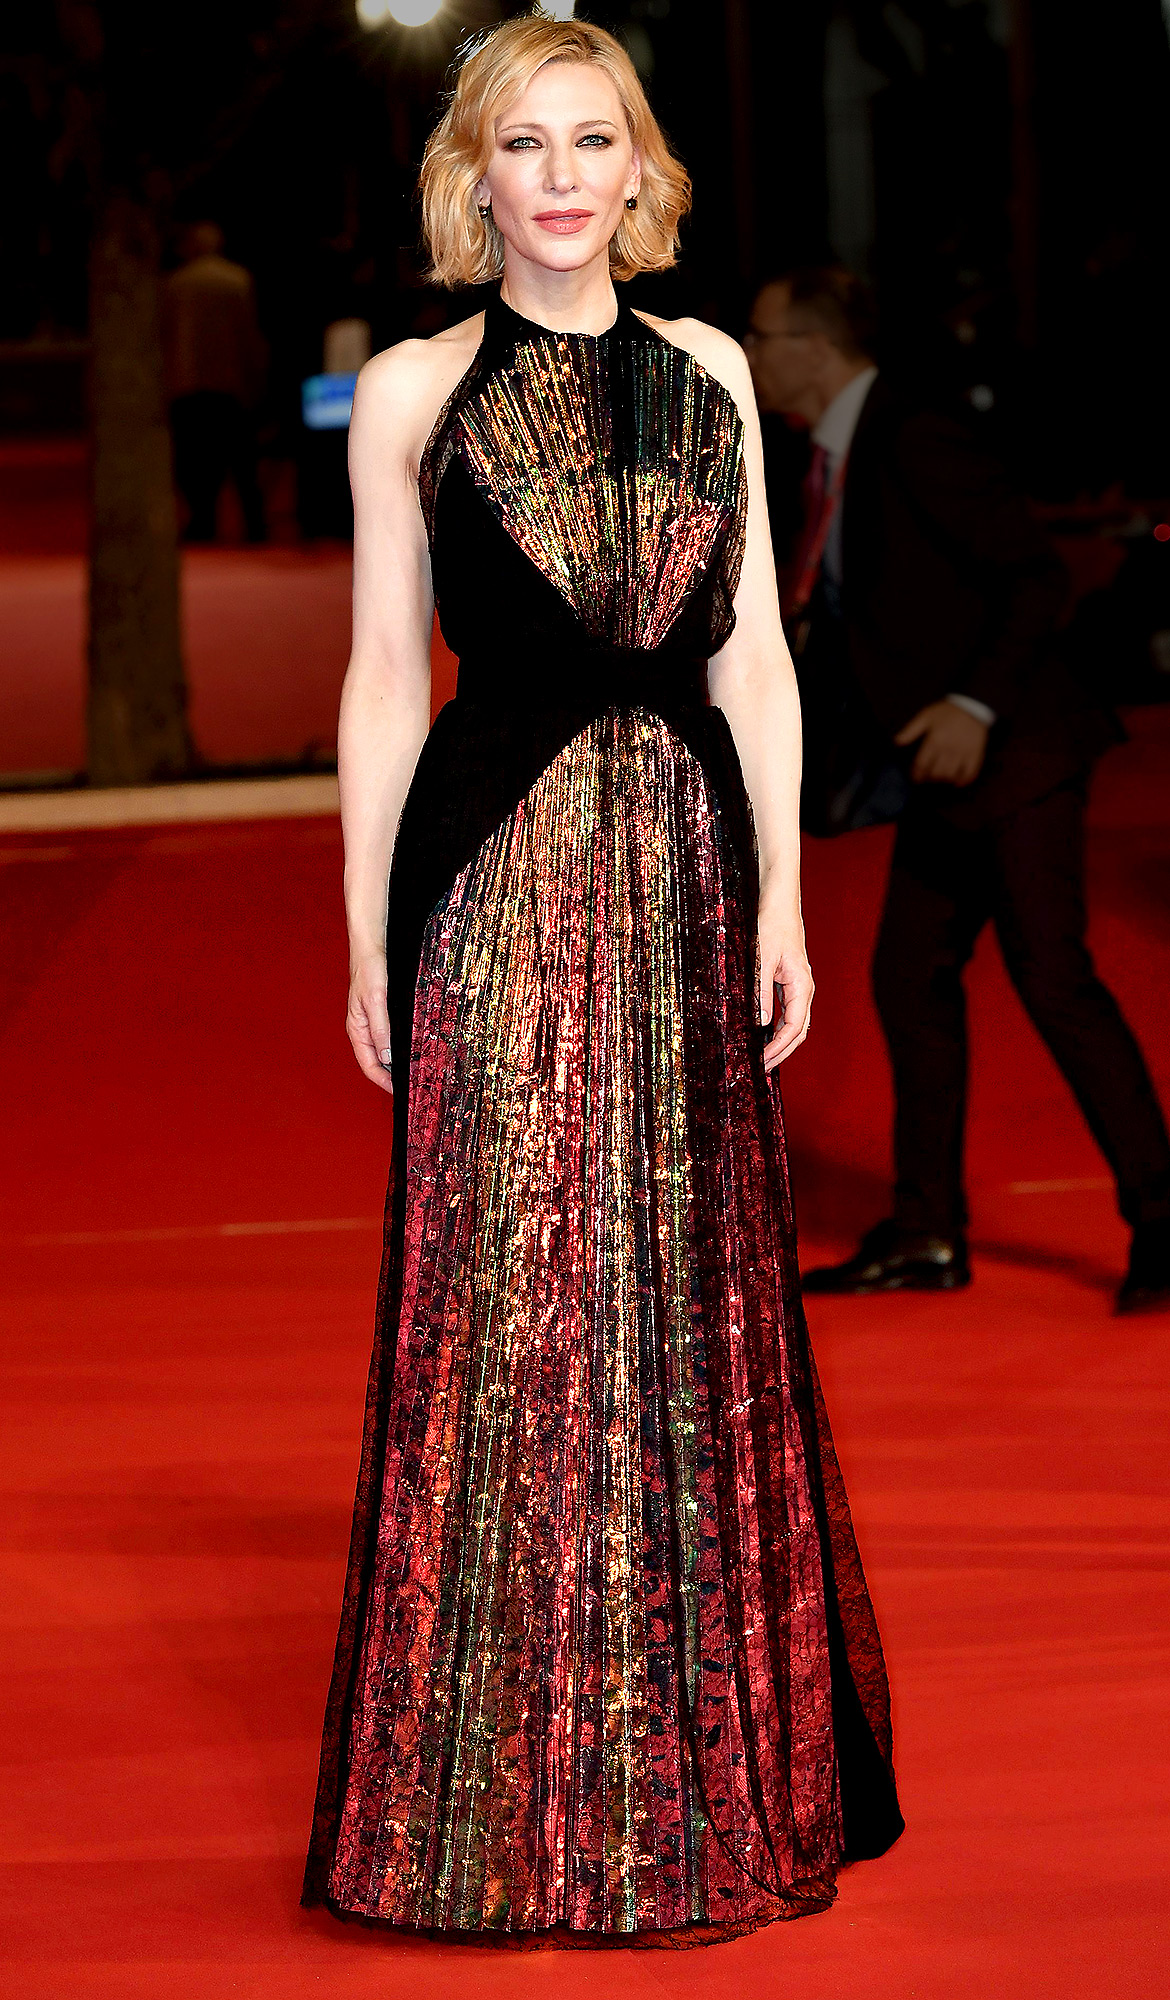 'The House with a Clock in Its Walls' premiere, Rome Film Festival, Italy - 19 Oct 2018